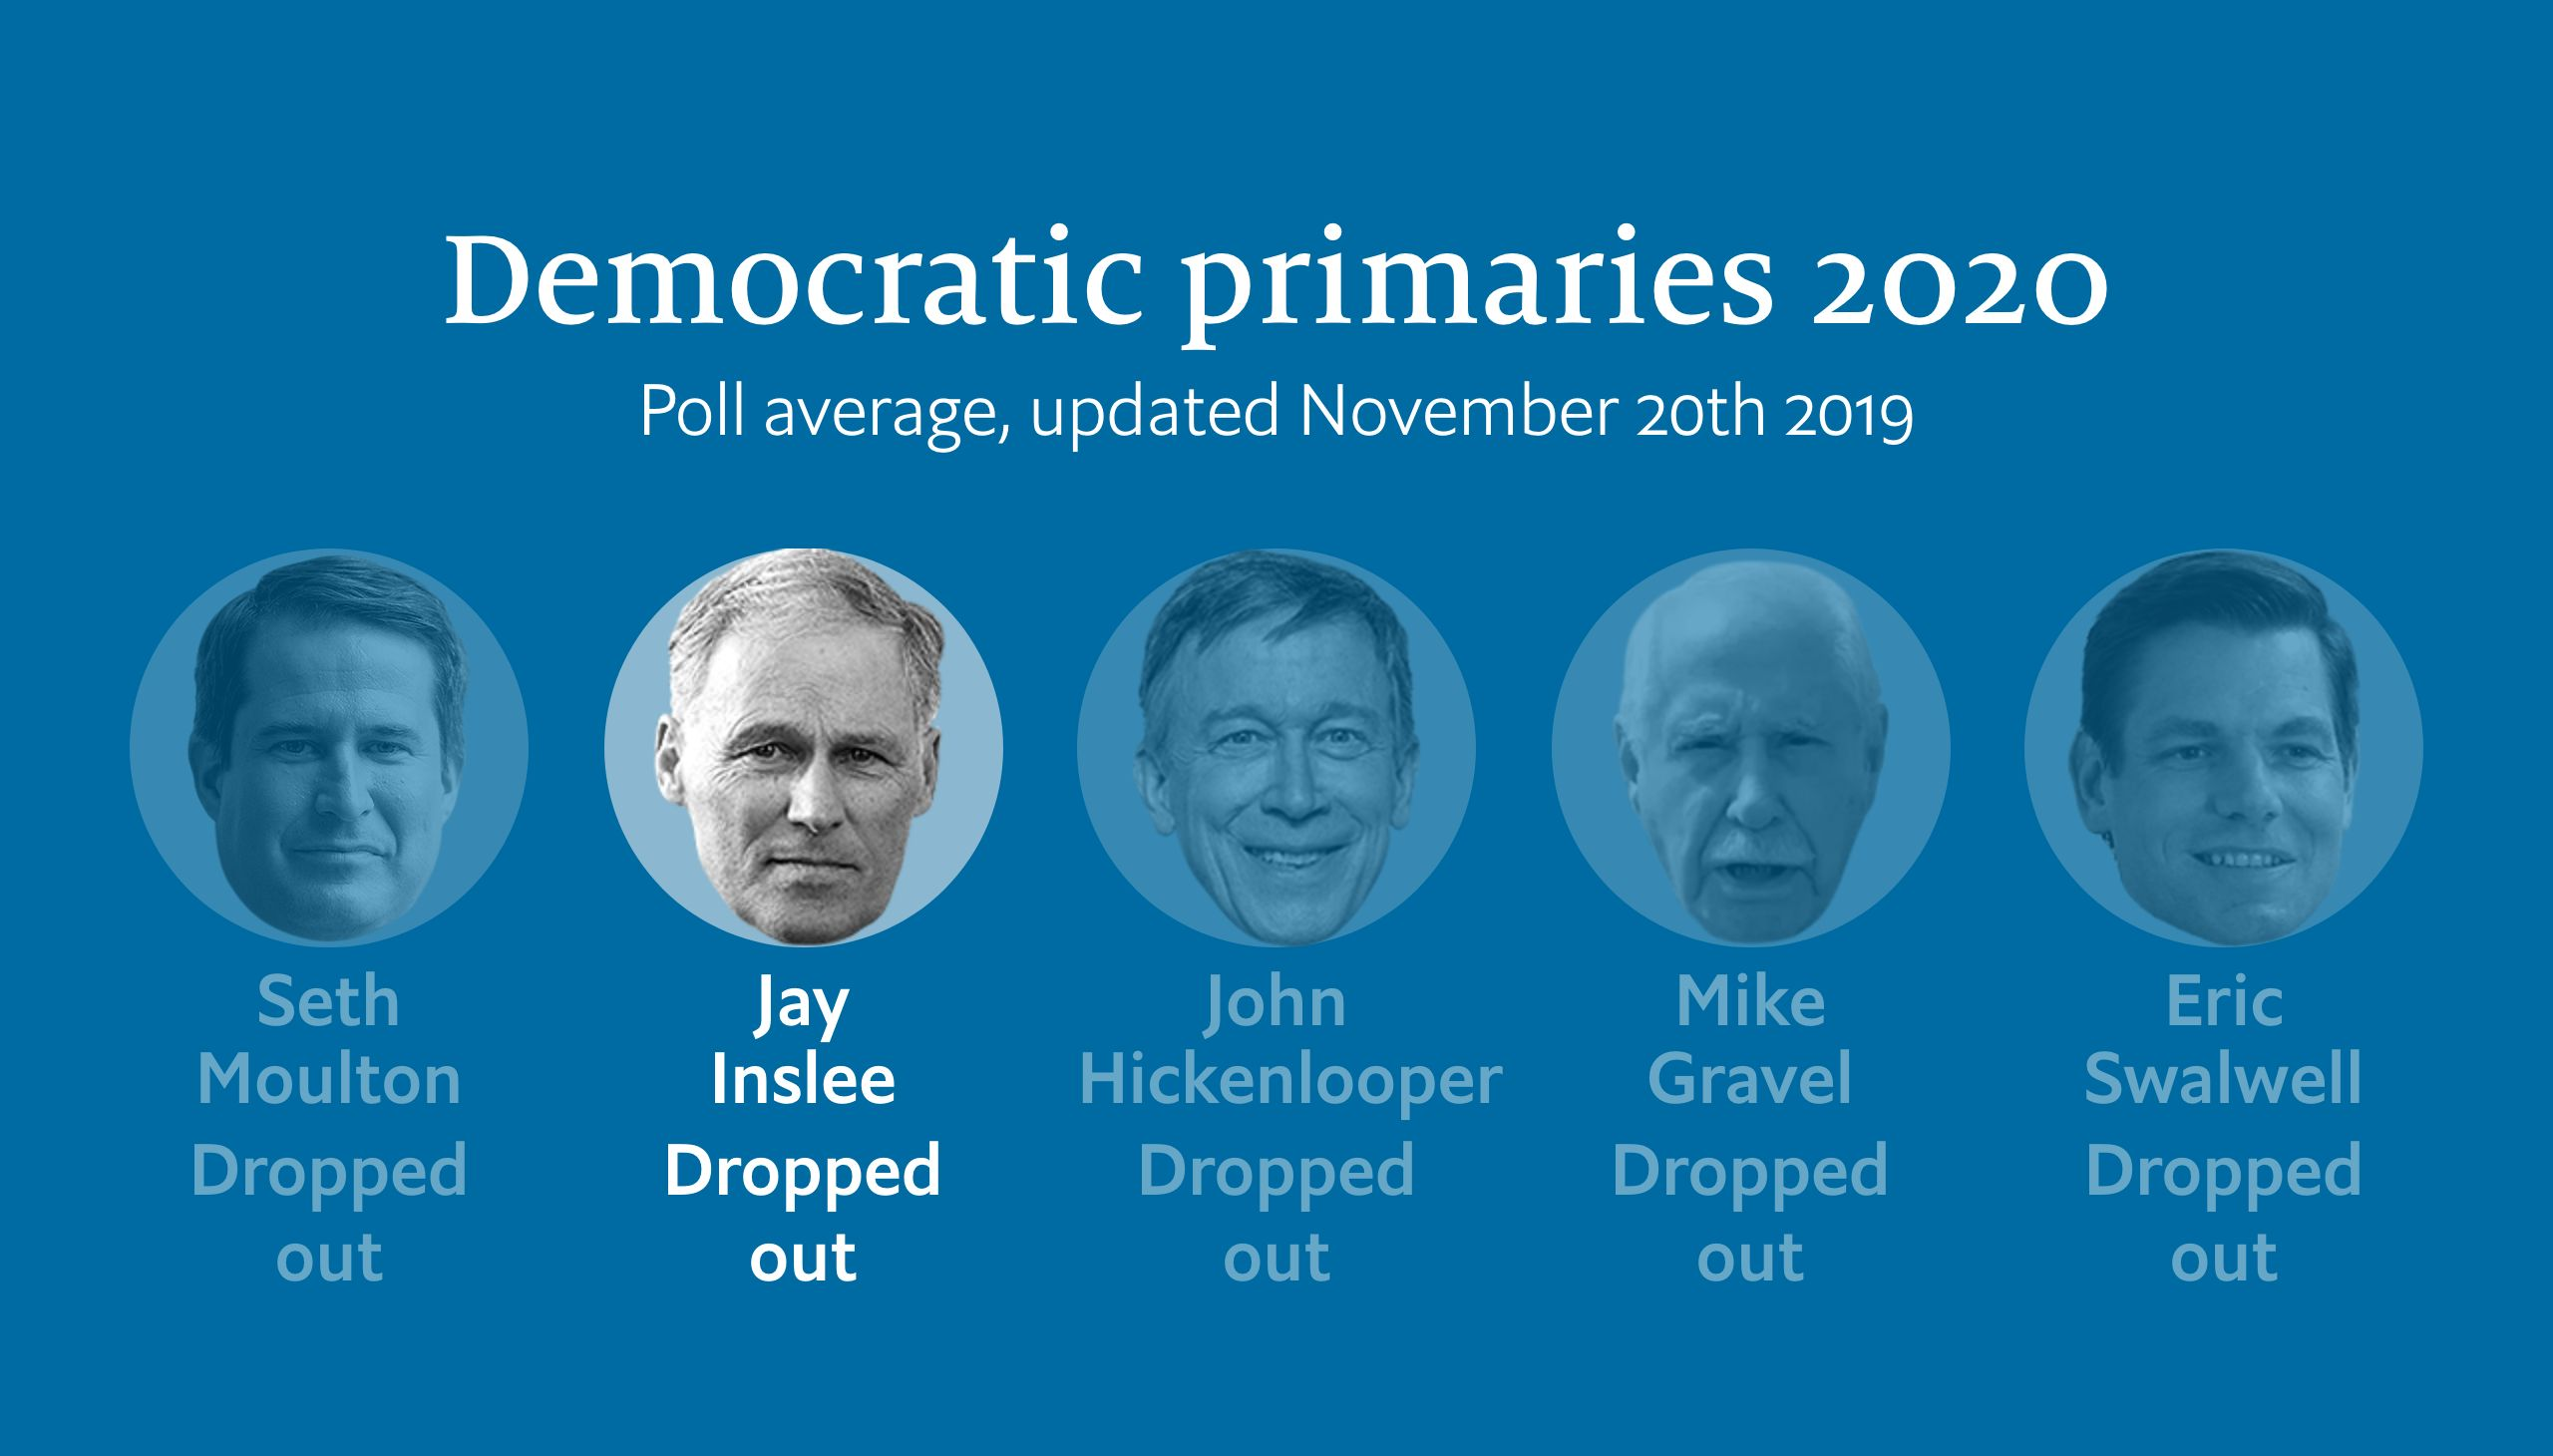 Jay Inslee — Democratic primaries 2020